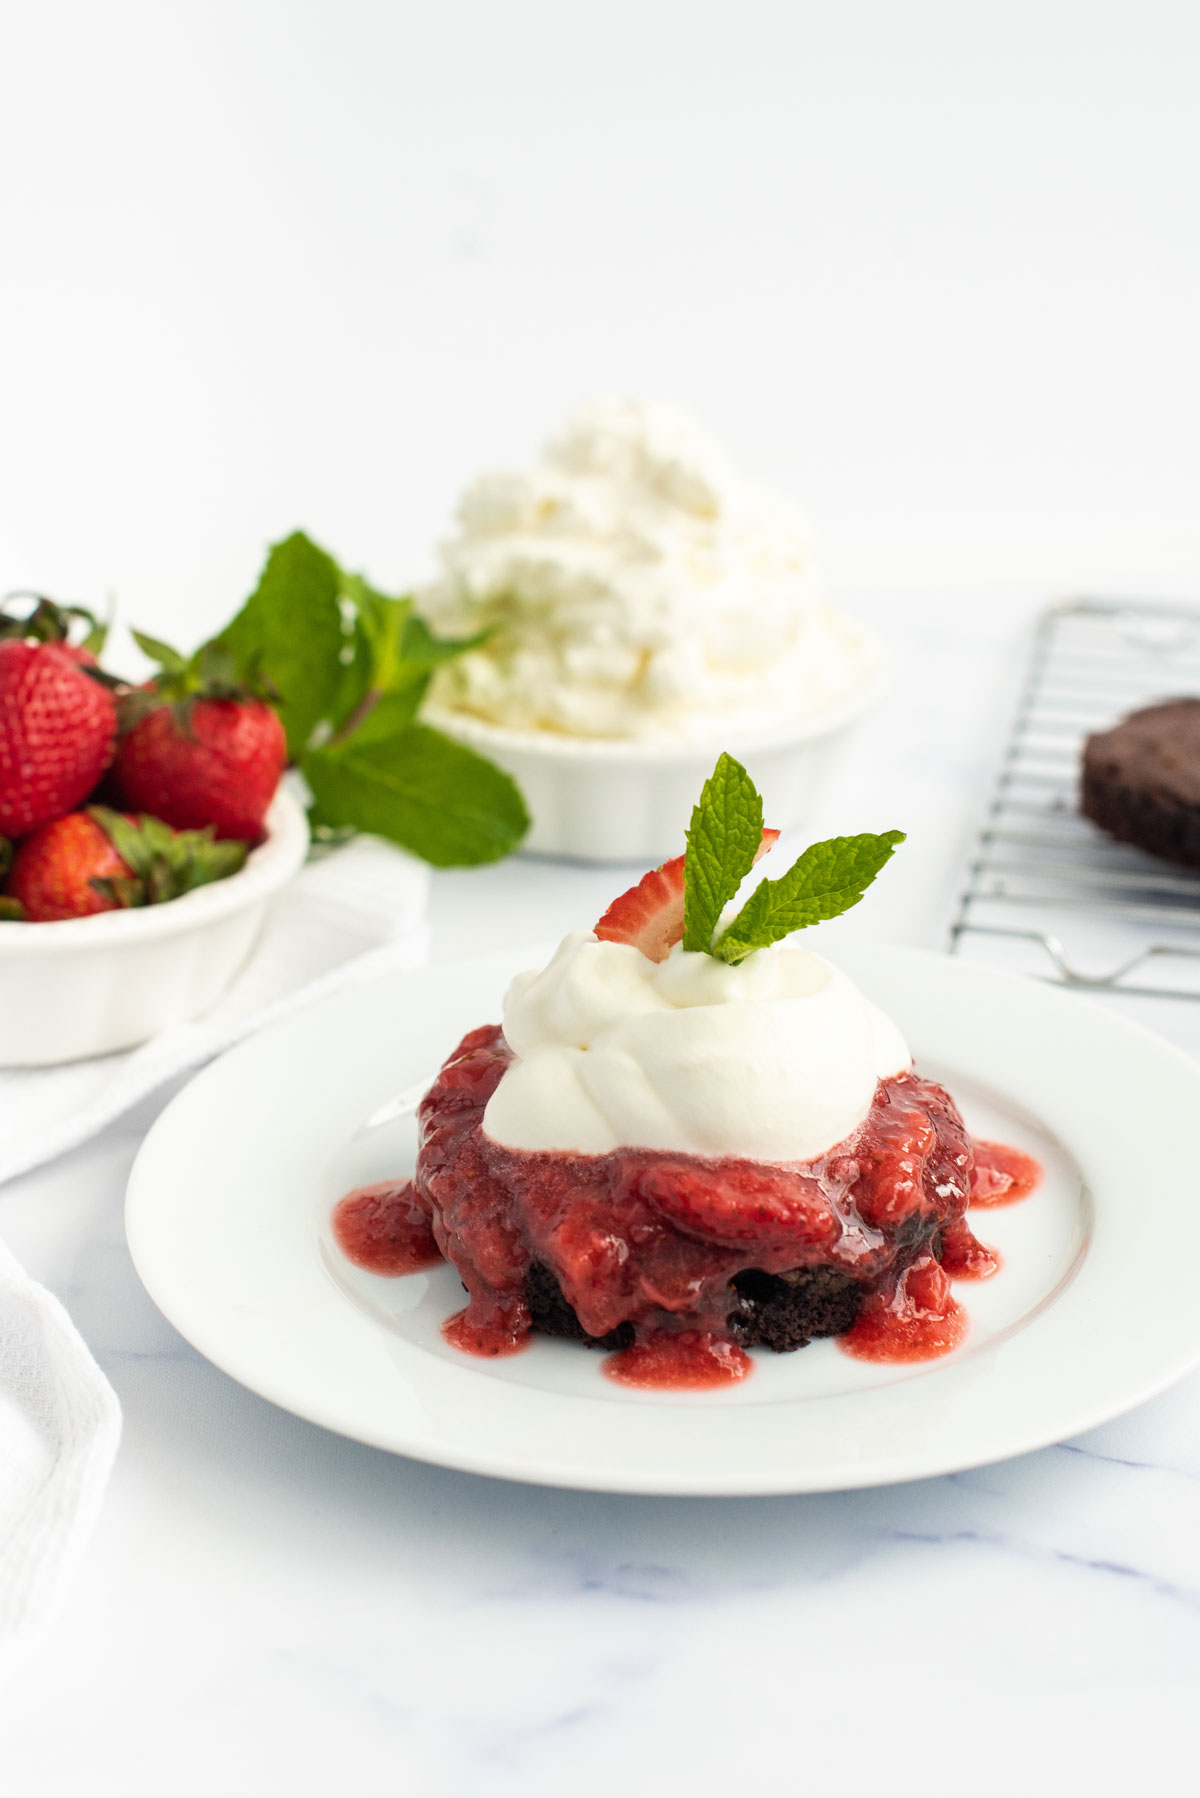 homemade brownies topped with strawberry sauce